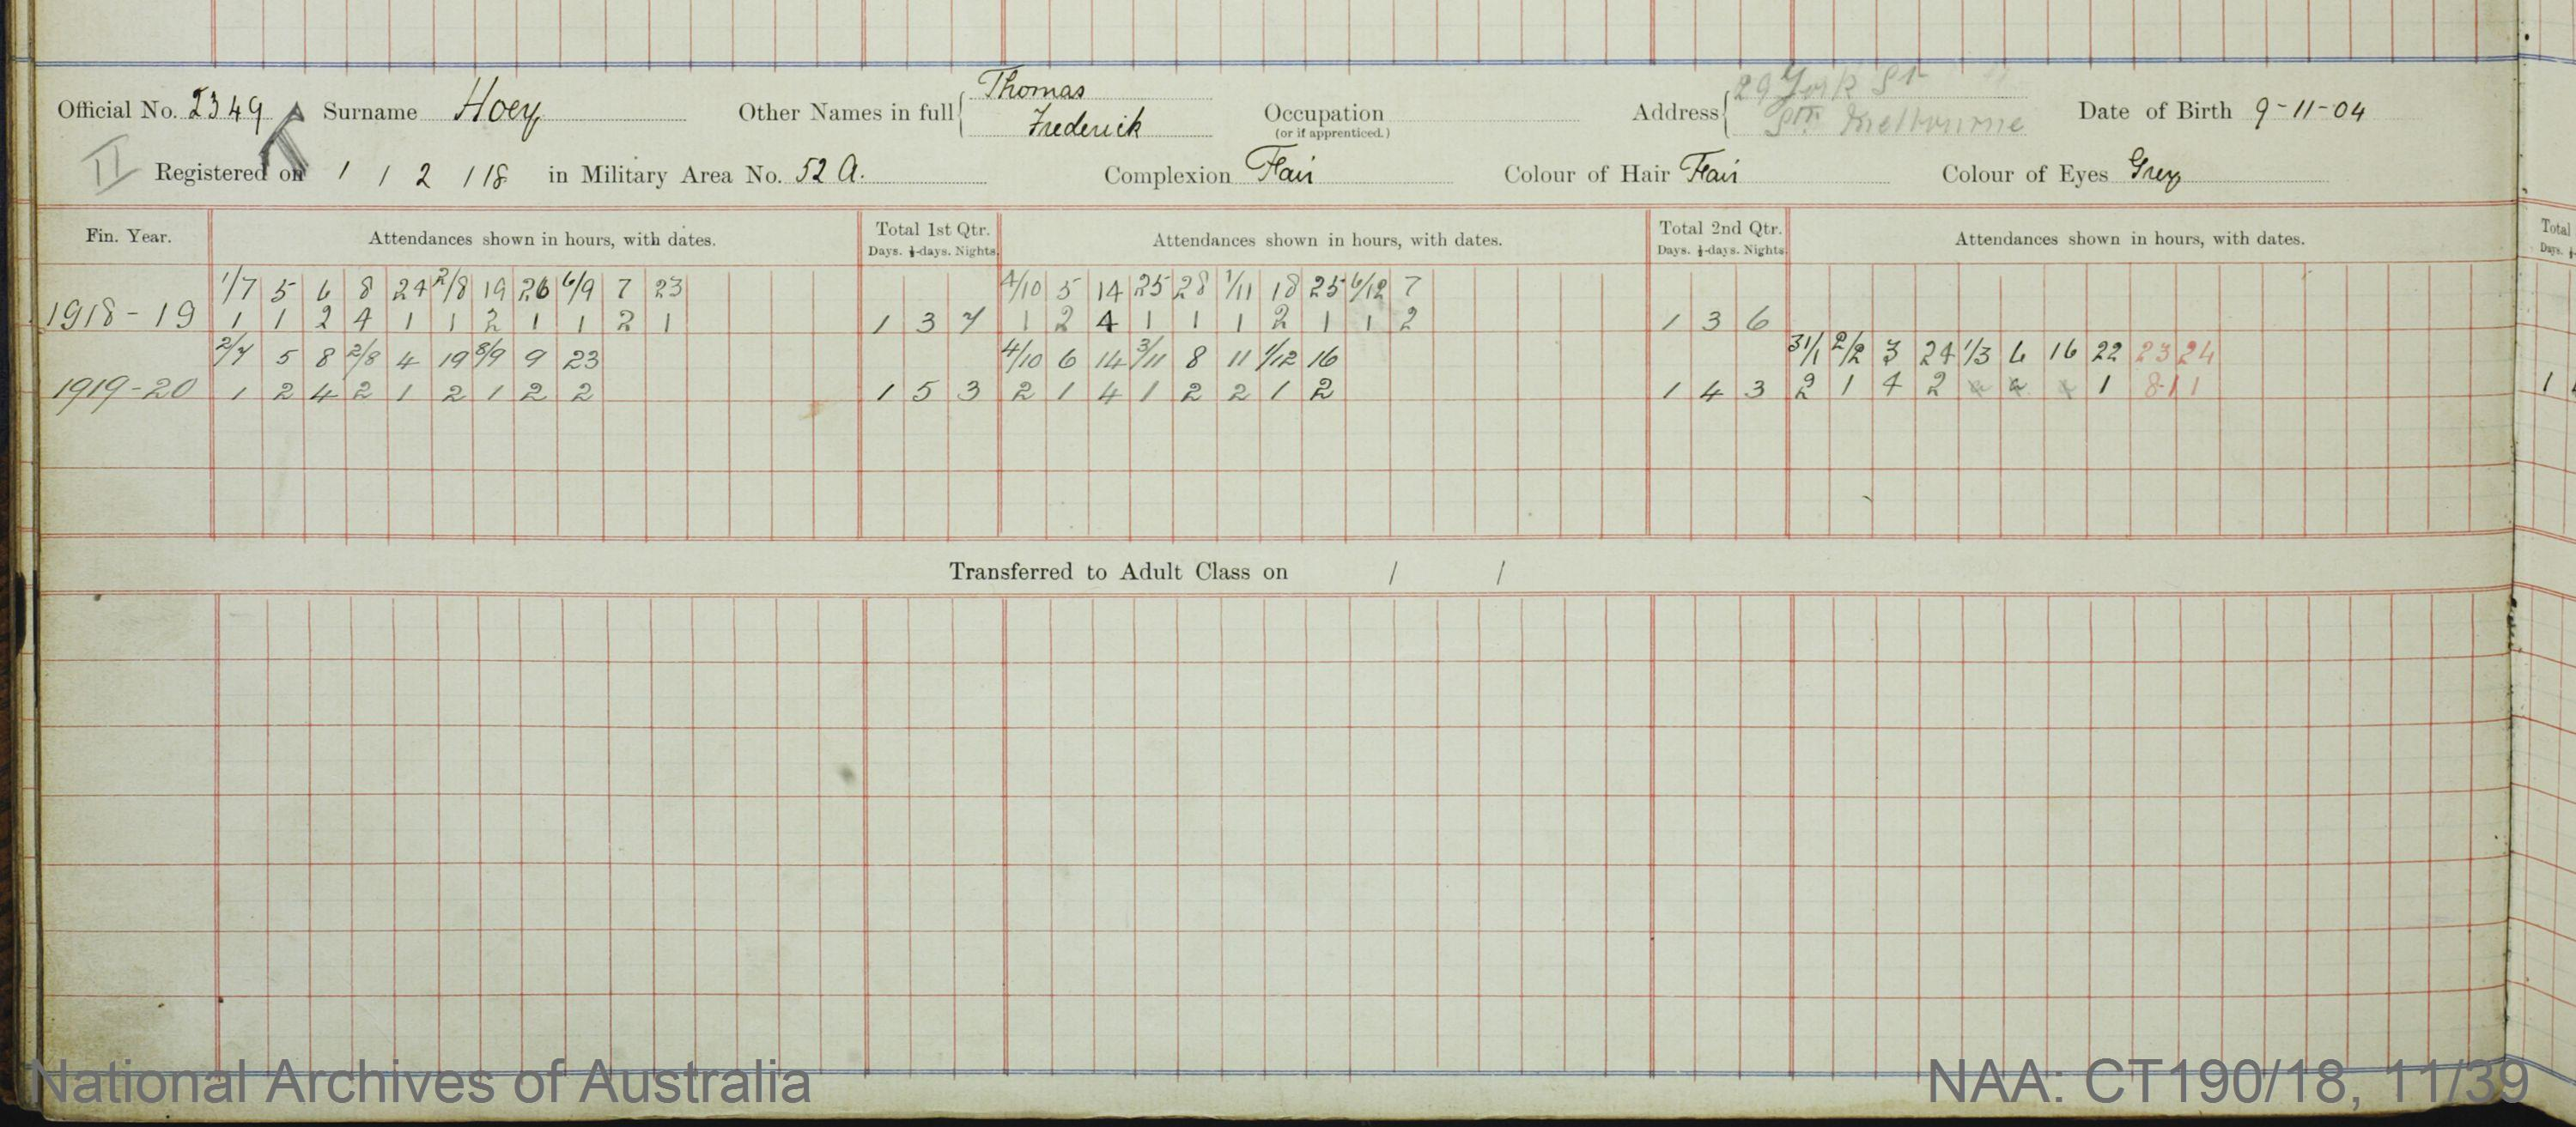 SURNAME - HOEY;  GIVEN NAME(S) - Thomas Frederick;  OFFICIAL NUMBER - 2349;  DATE OF BIRTH - 9 November 1904;  PLACE OF BIRTH - [Unknown];  NEXT OF KIN - [Unknown] ;  SERVICE/STATION - Port Melbourne;  REGISTRATION DATE - 1 February 1918